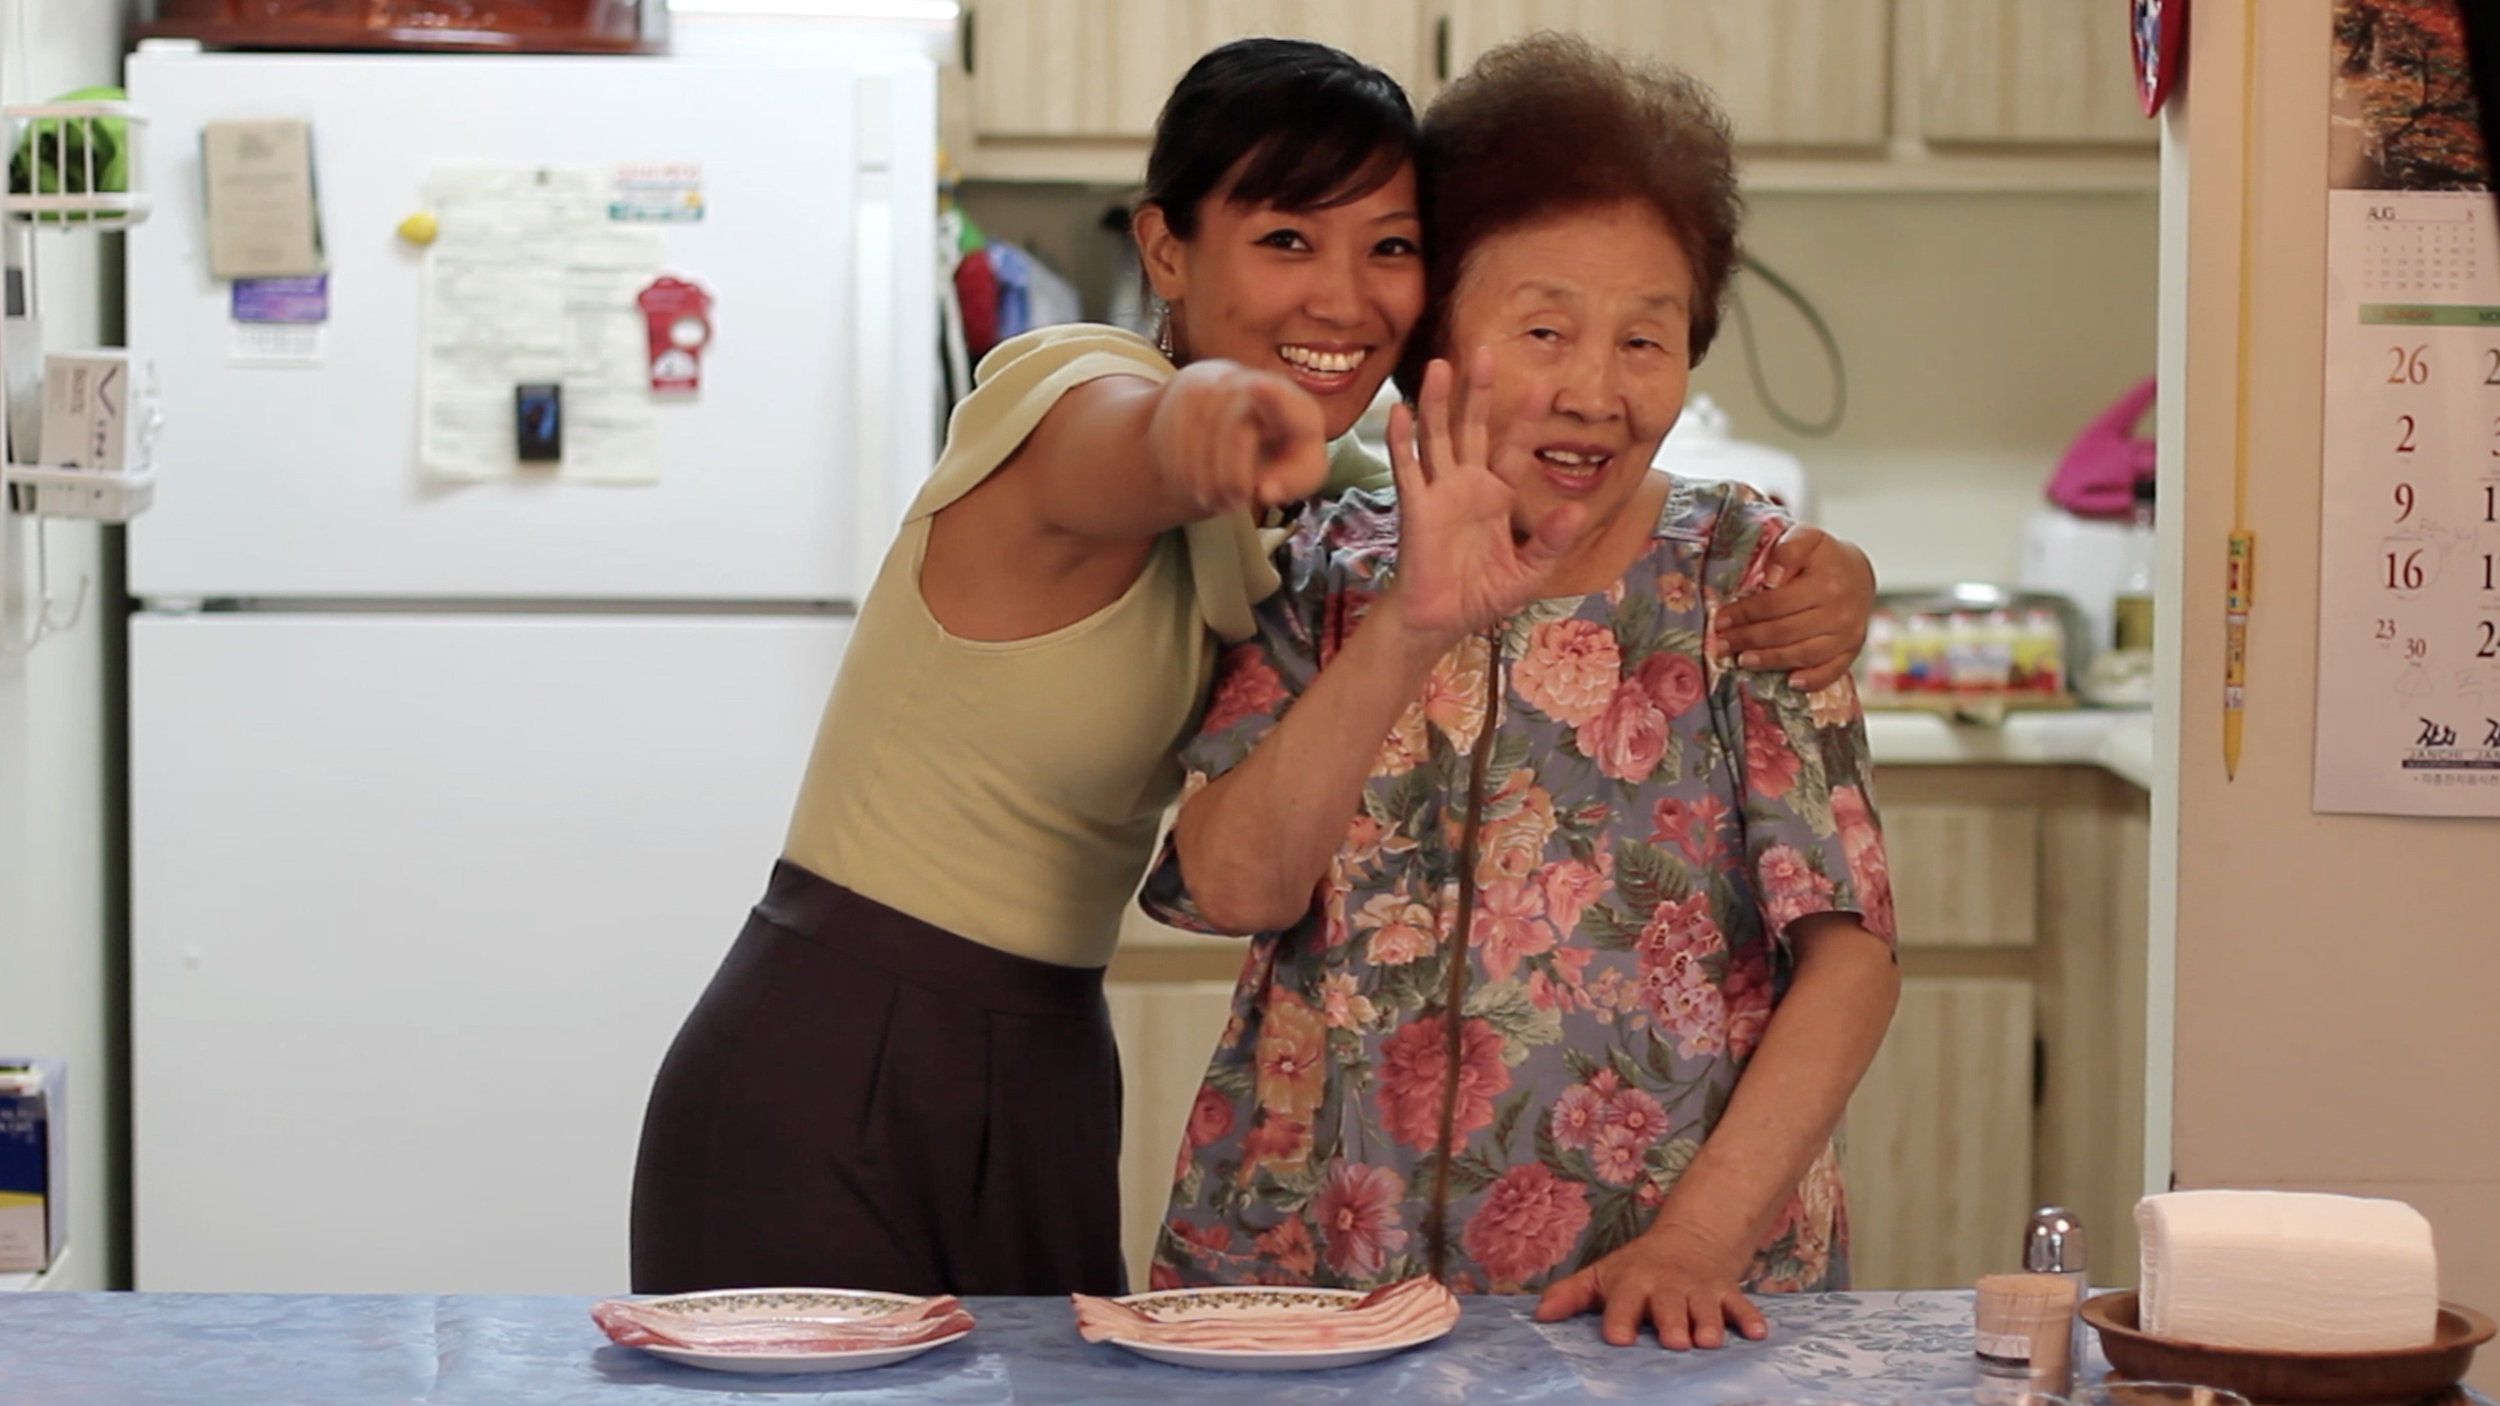 Cooking with Granny - Granny - Production Still 2.jpg